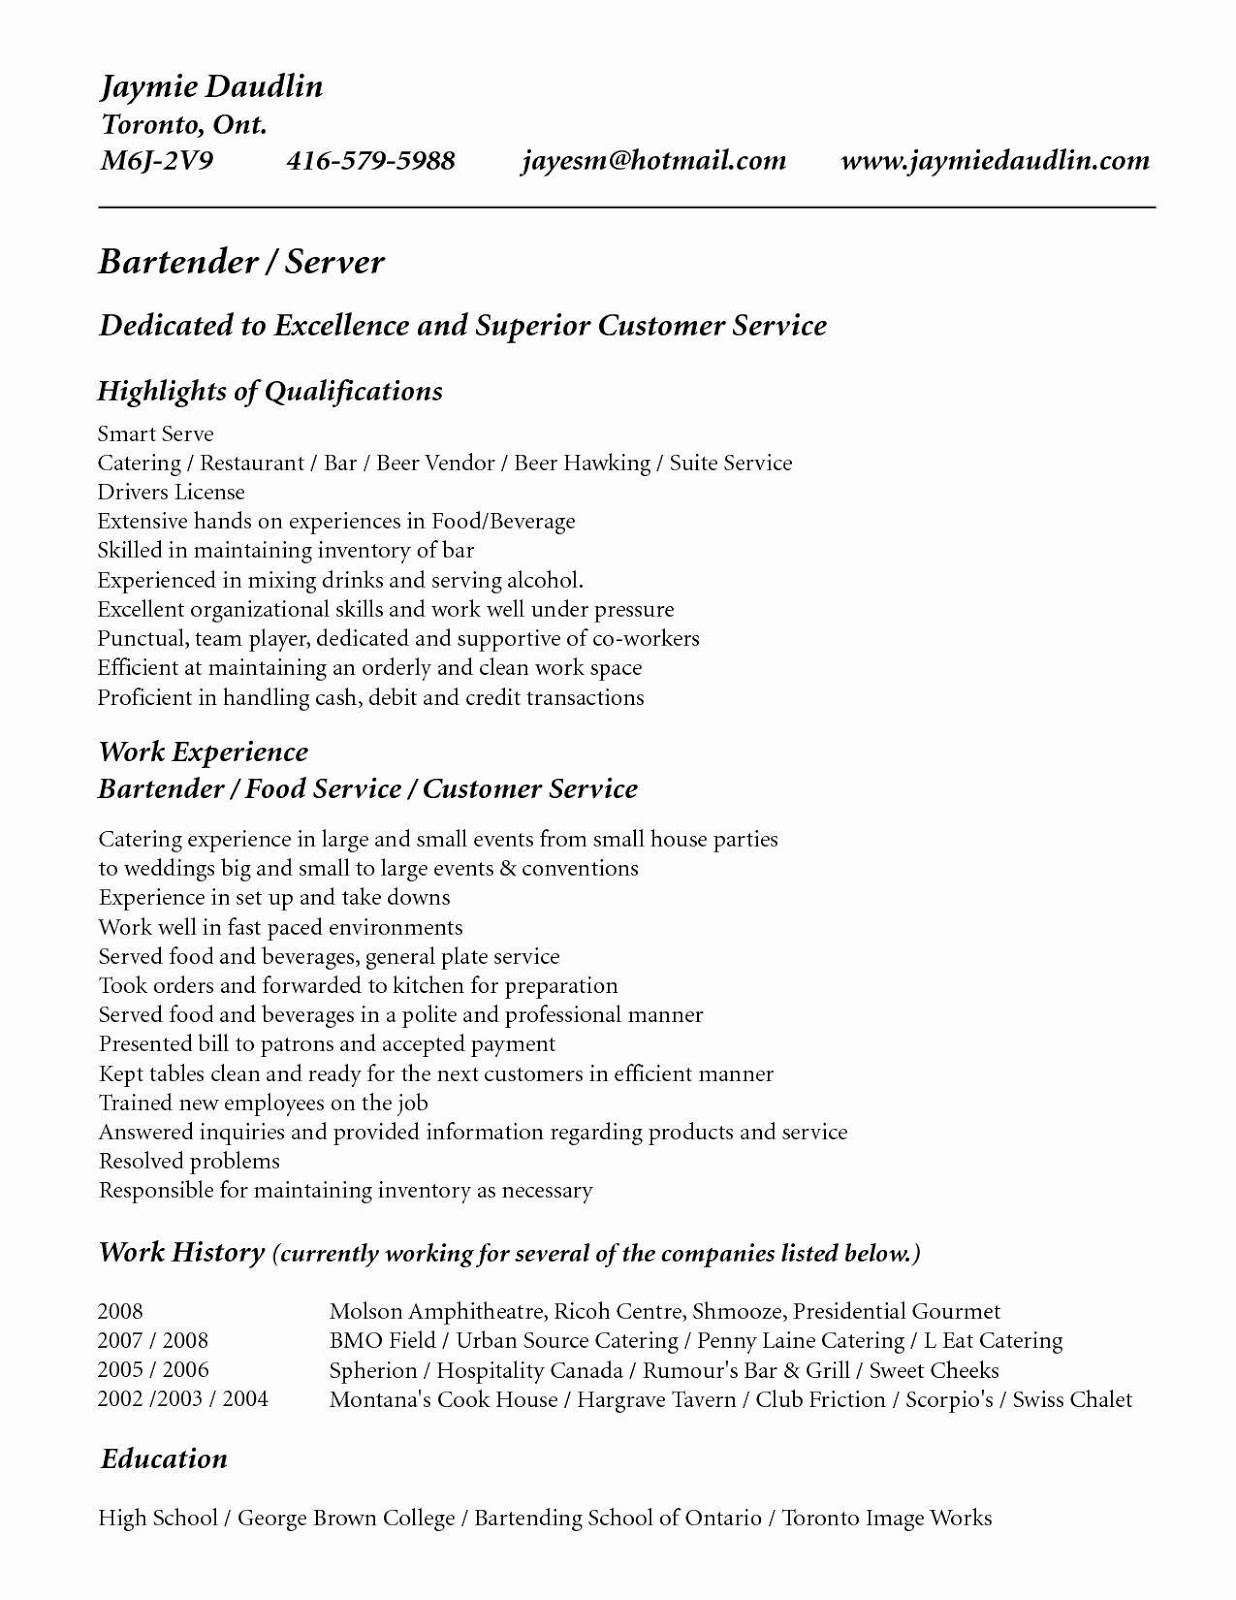 Bartending Resume Skills 2019 Sample Bartender Resume Examples 2020 bartender resume skills sample bartender resume skills bartender/server resume skills bartender resume skills examples head bartender resume skills bartender manager resume skills experienced bartender resume skills bartender resume skills and qualifications bartender resume example skills bartending skills for resume